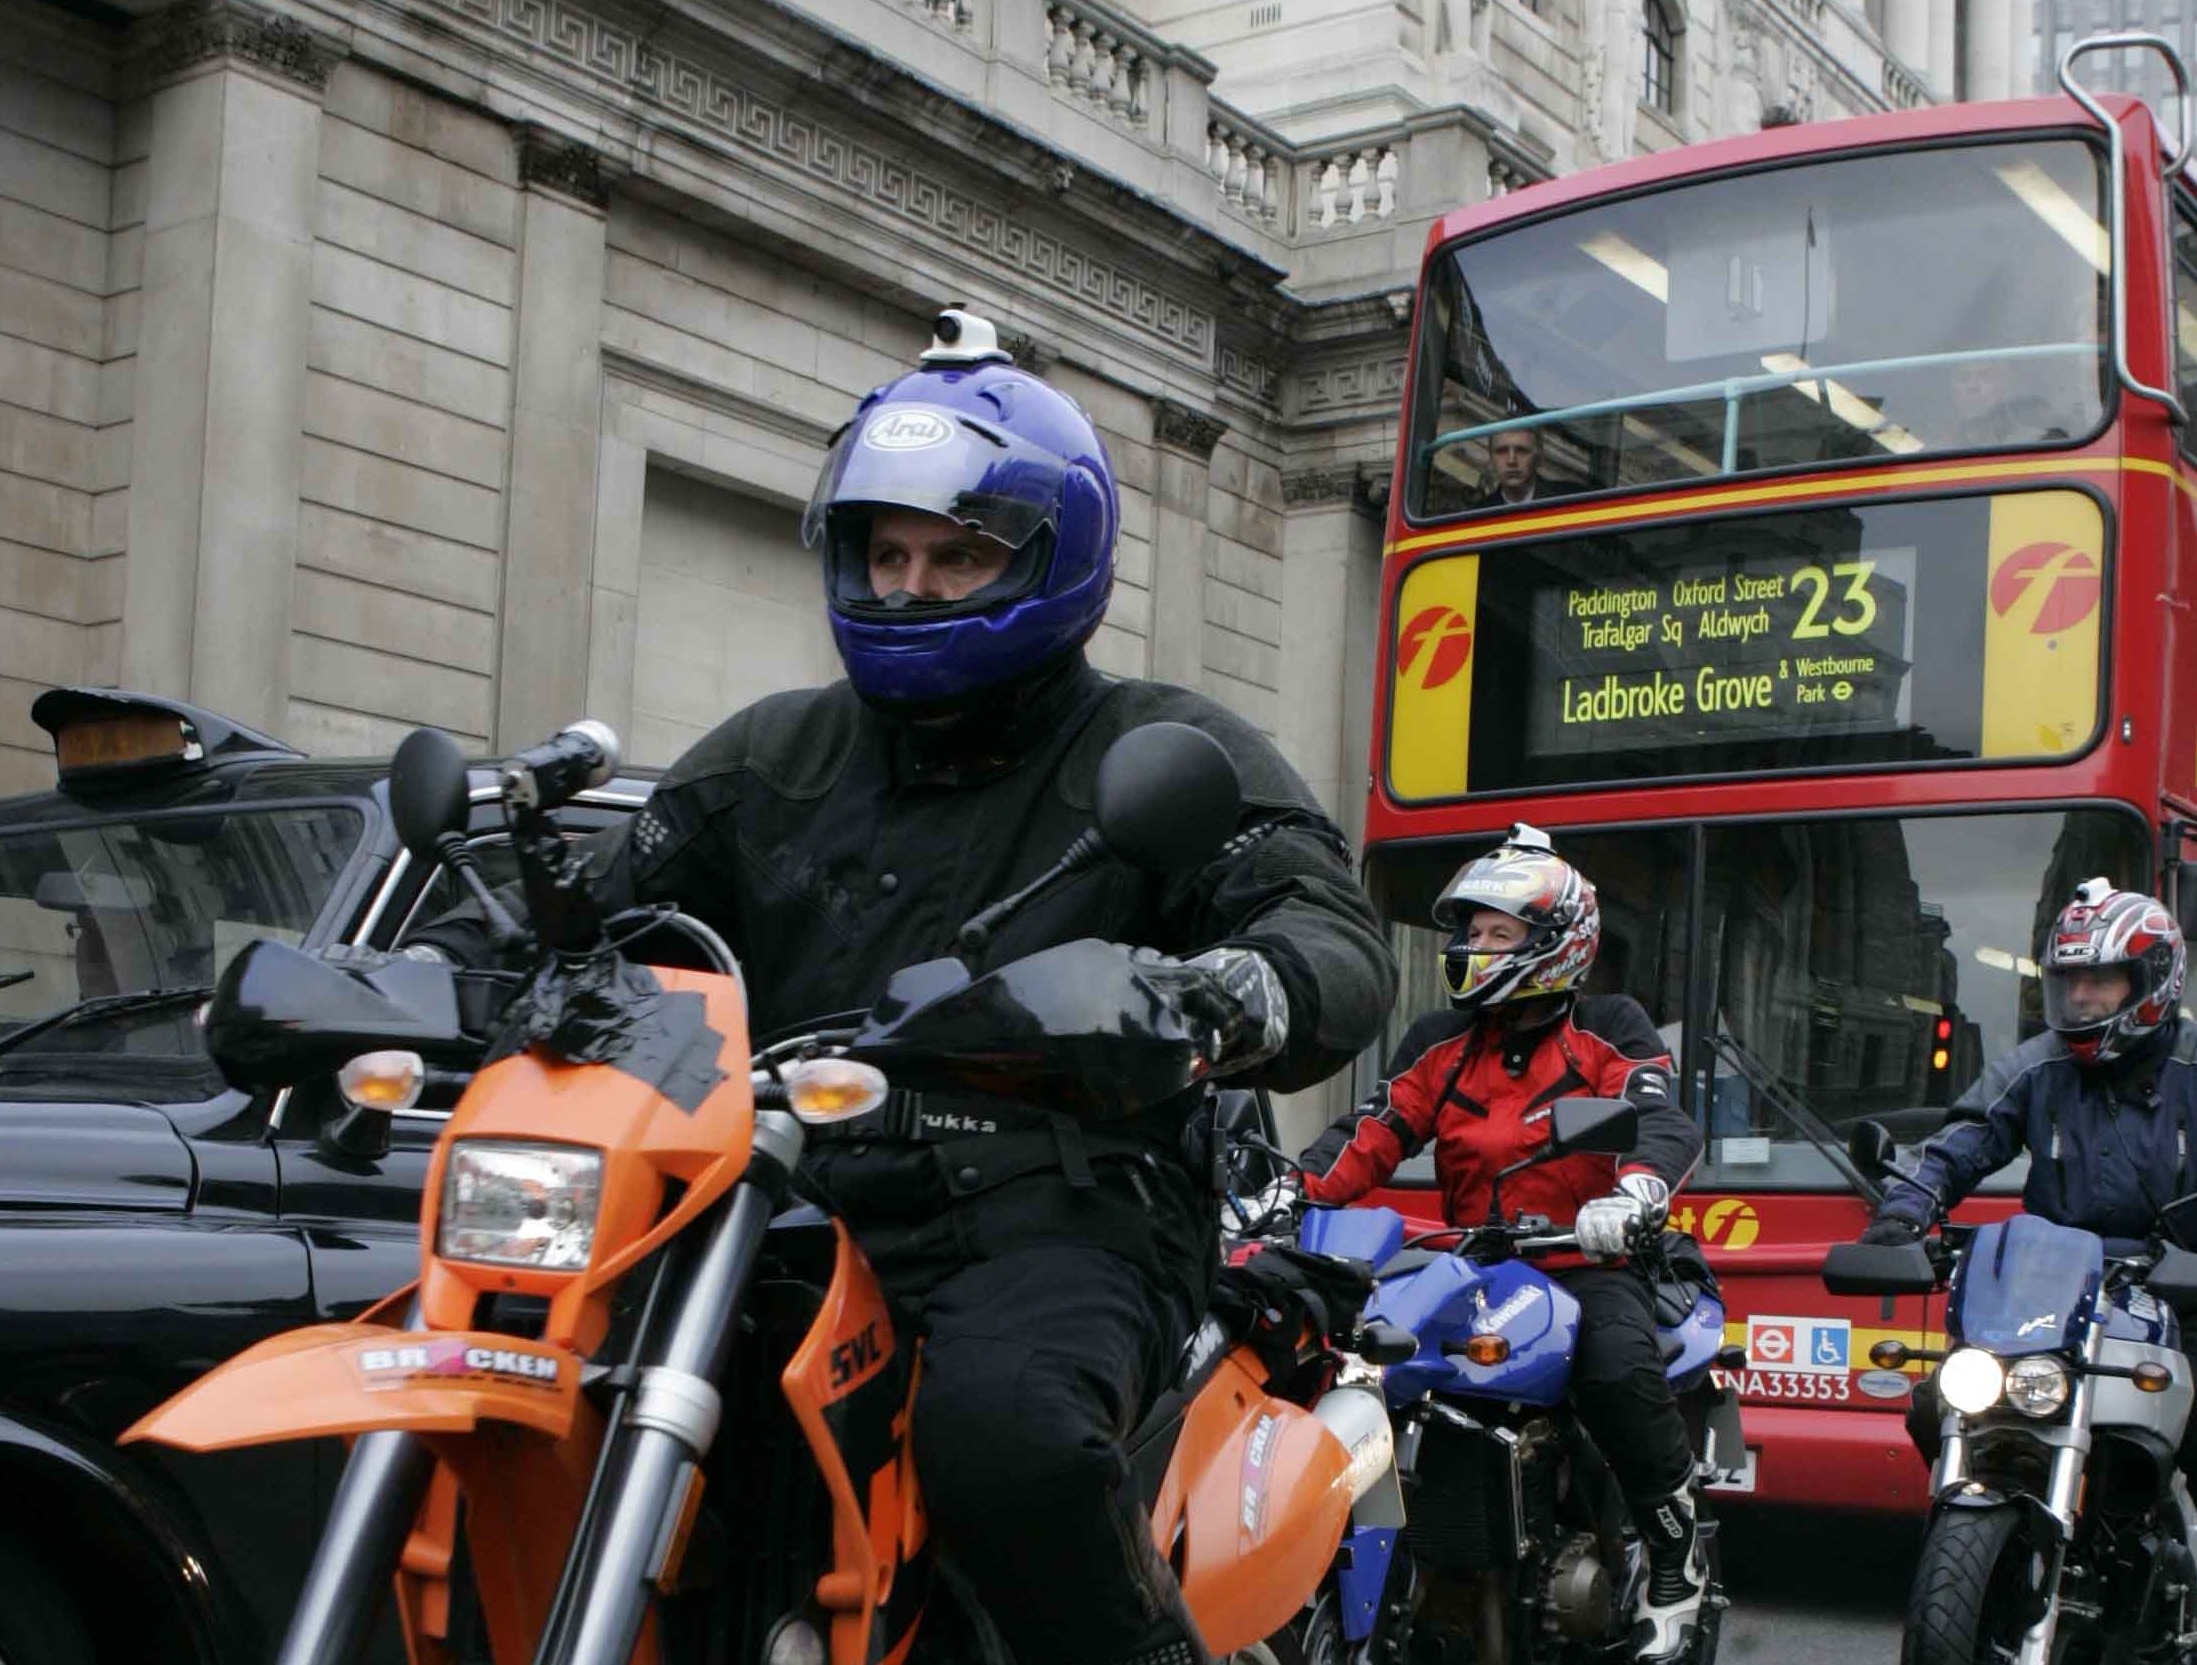 three motorcyclists with bus and taxi in London